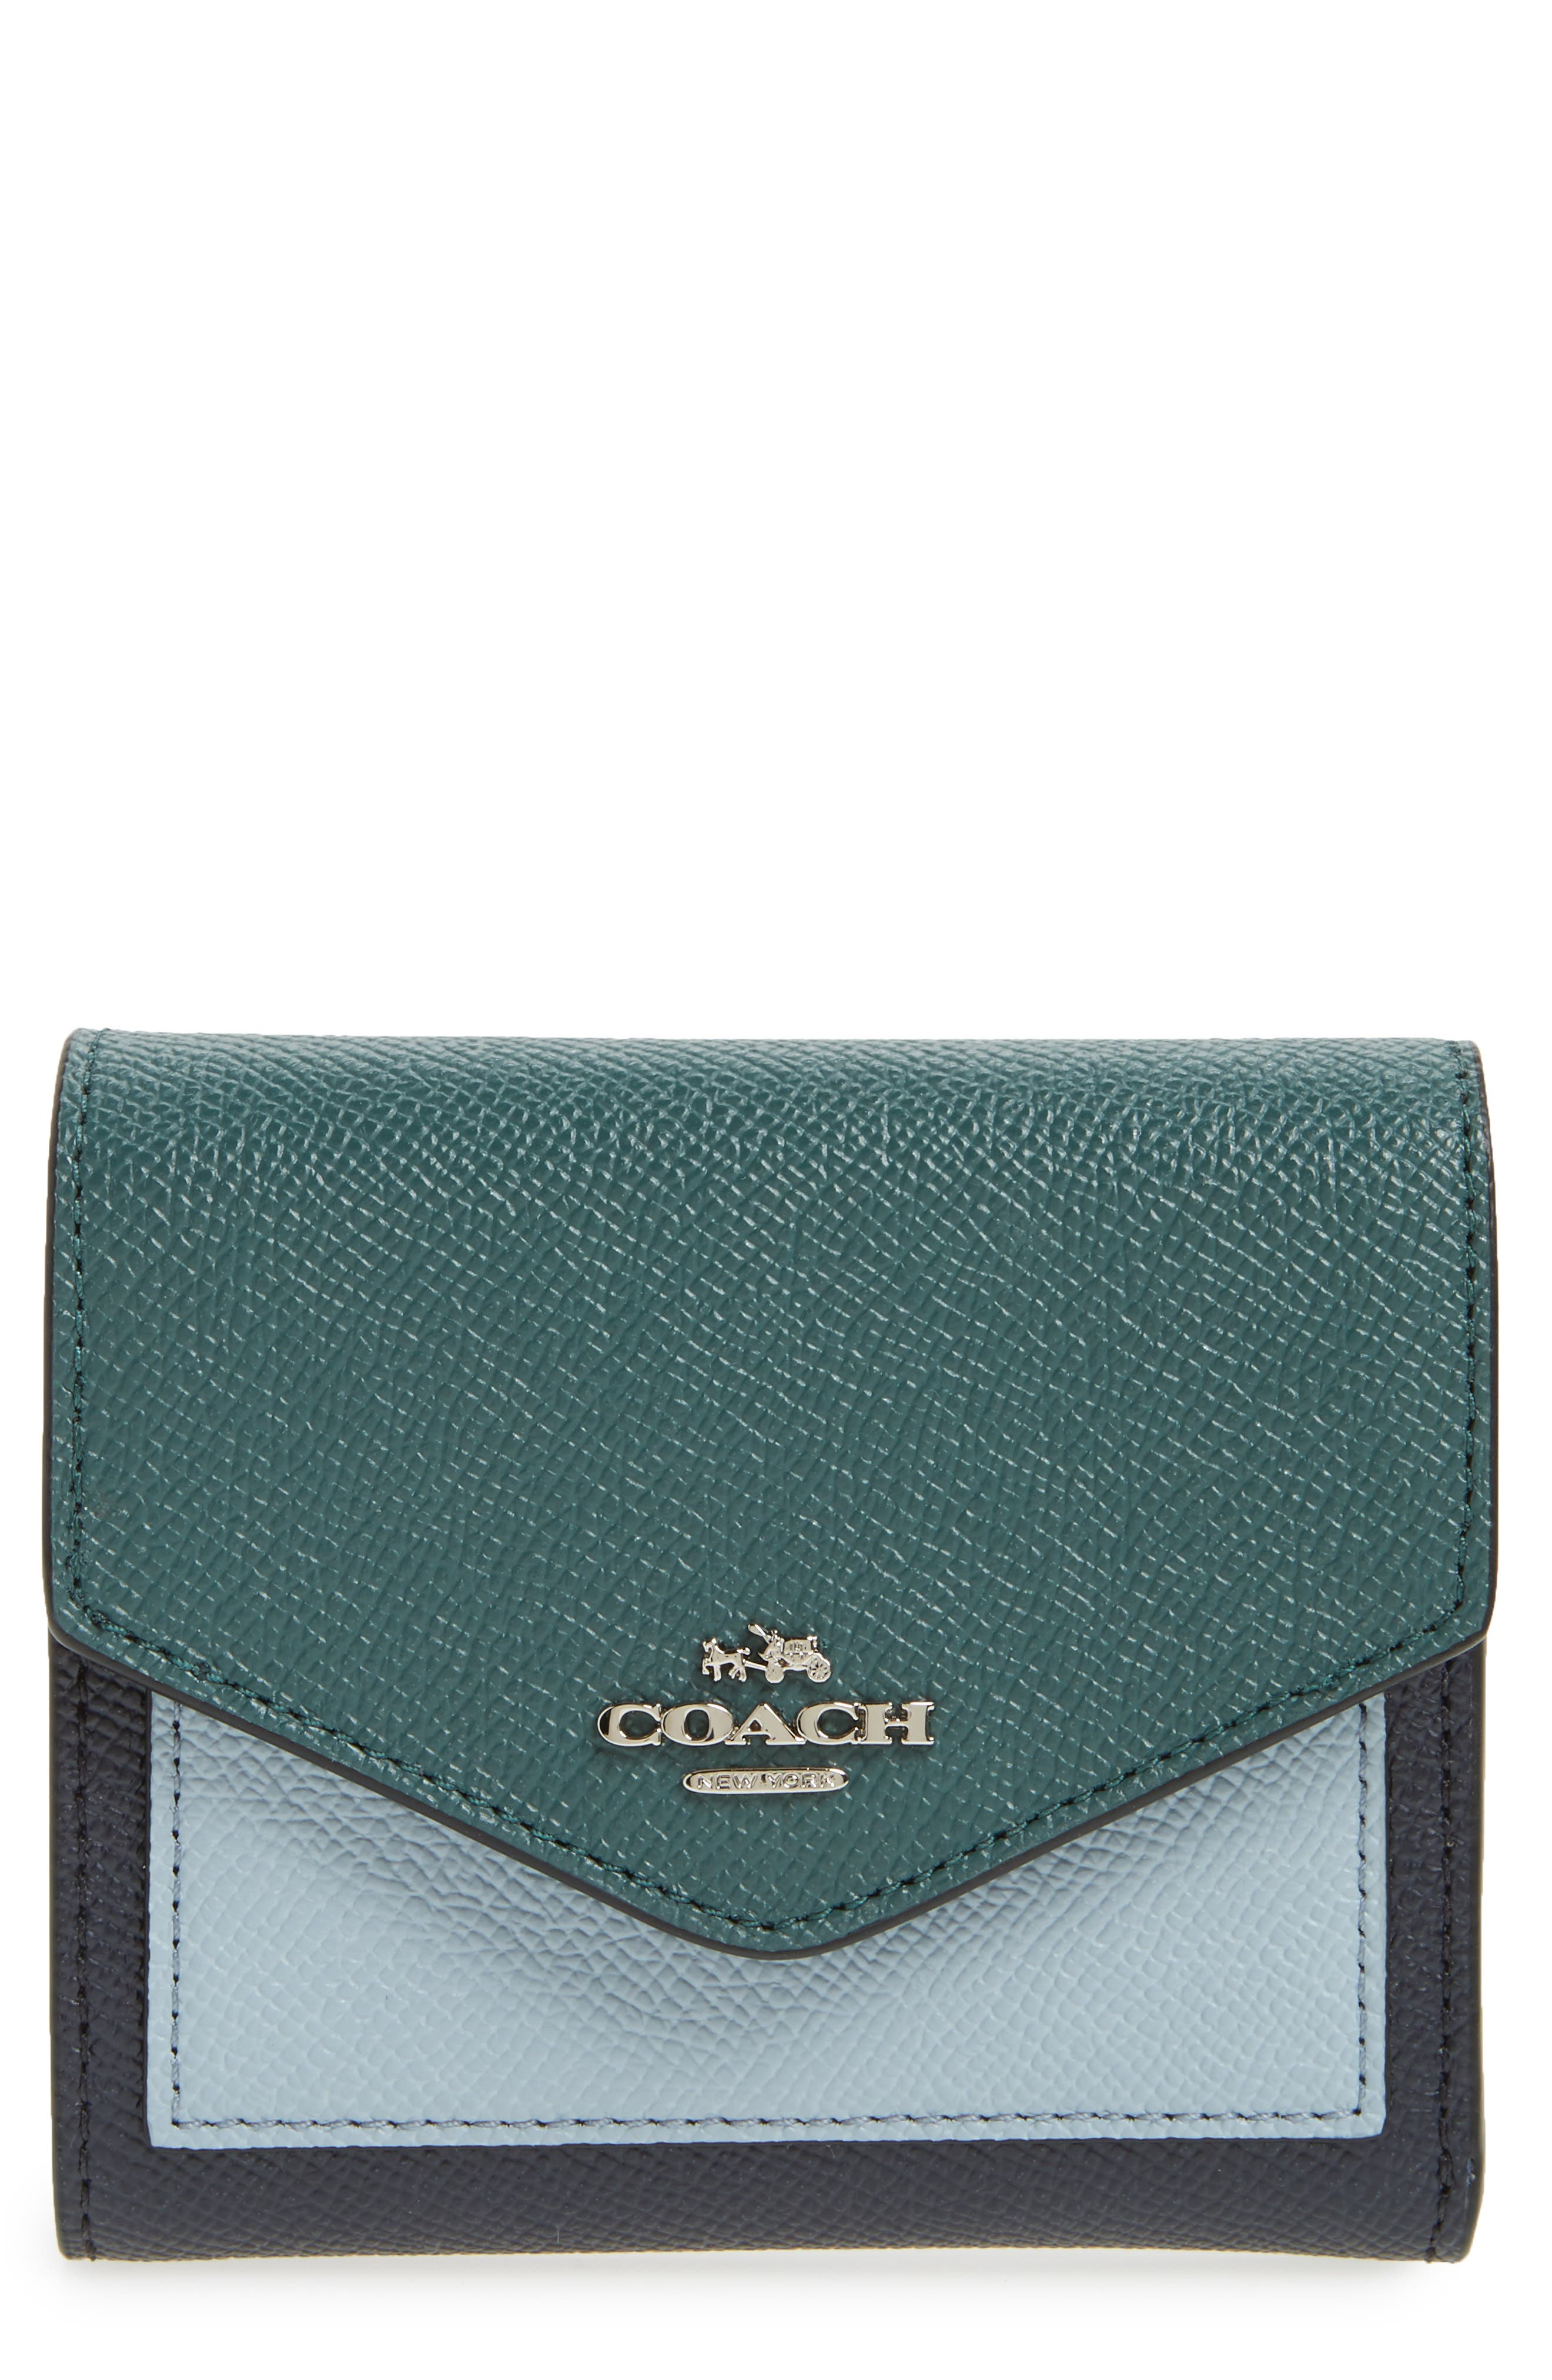 Alternate Image 1 Selected - COACH Small Colorblock Calfskin Leather Wallet